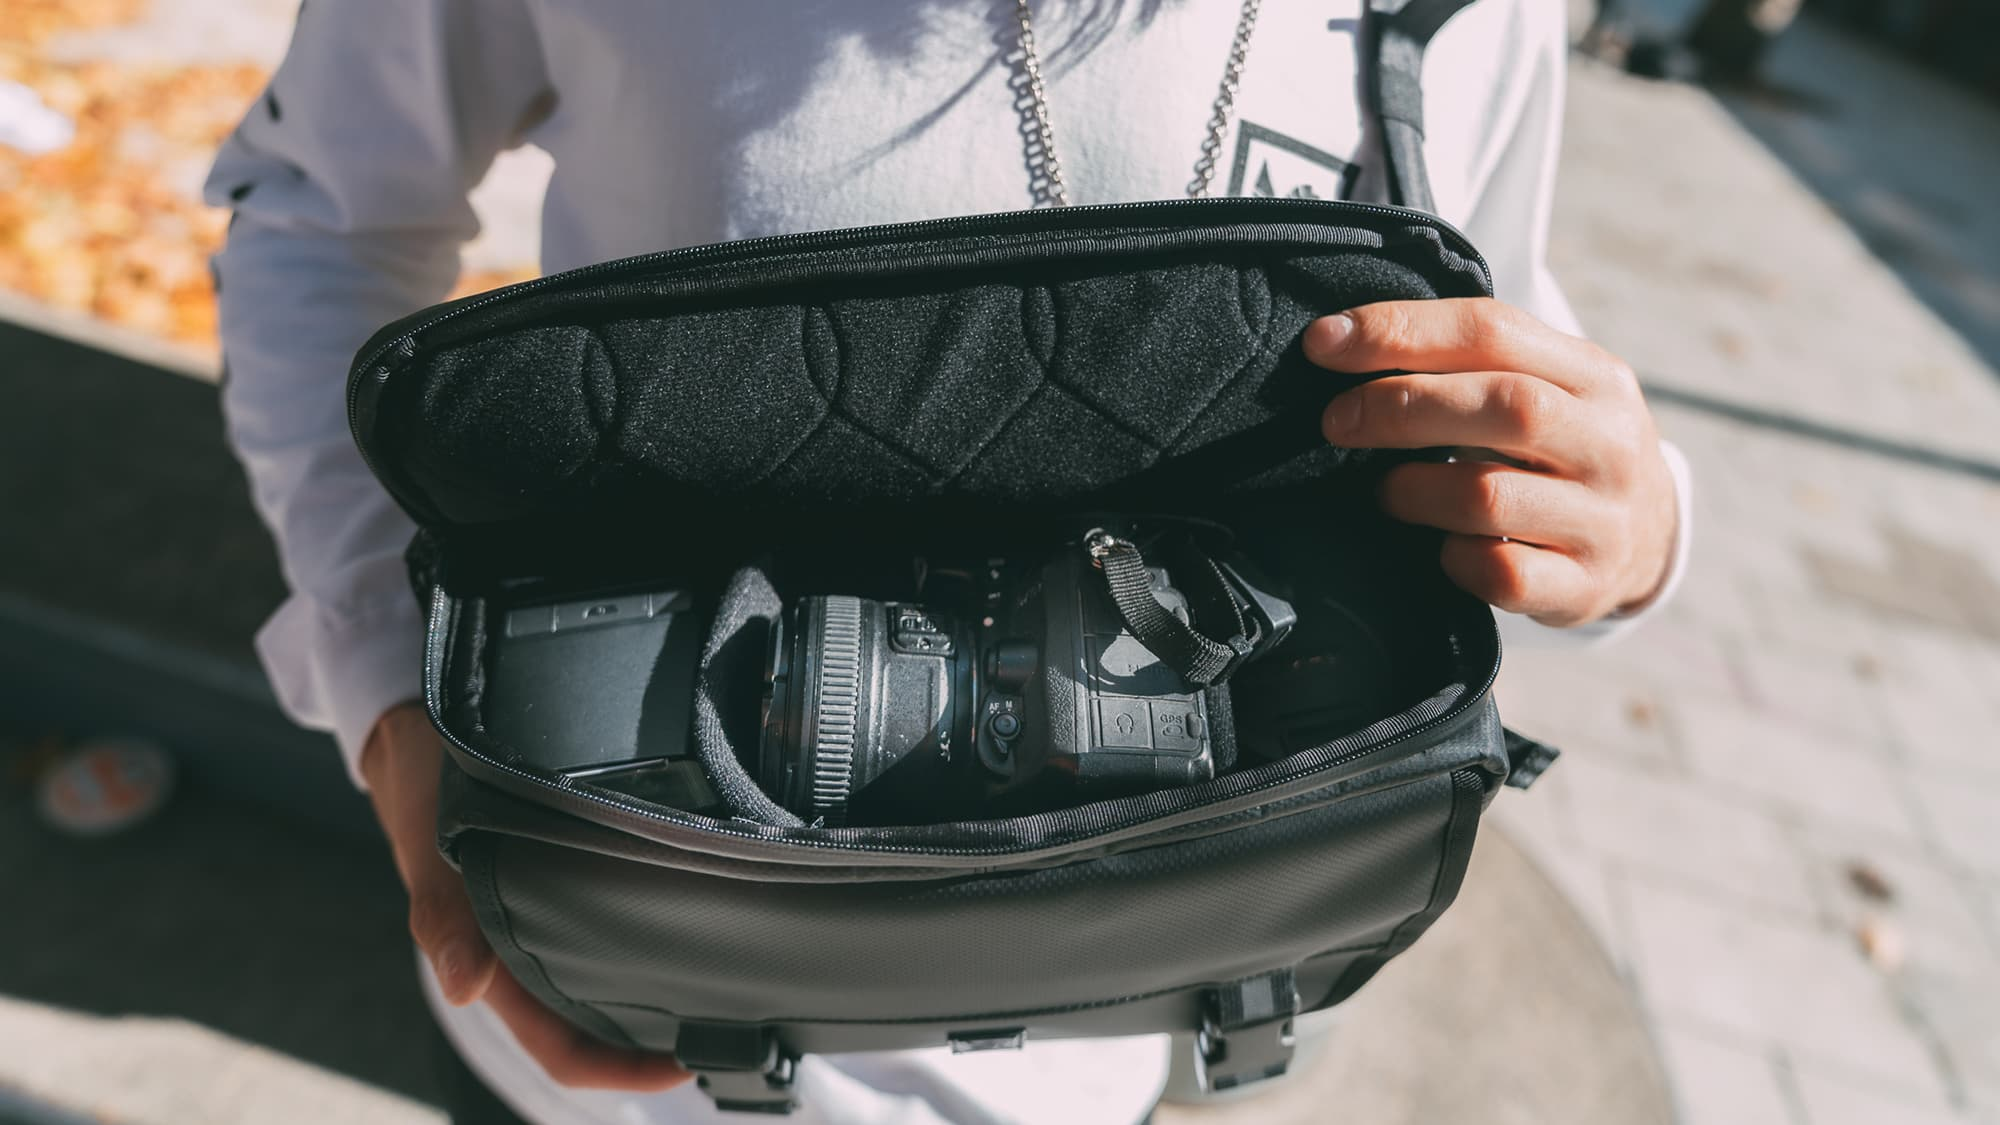 Niko Sling great for photographers